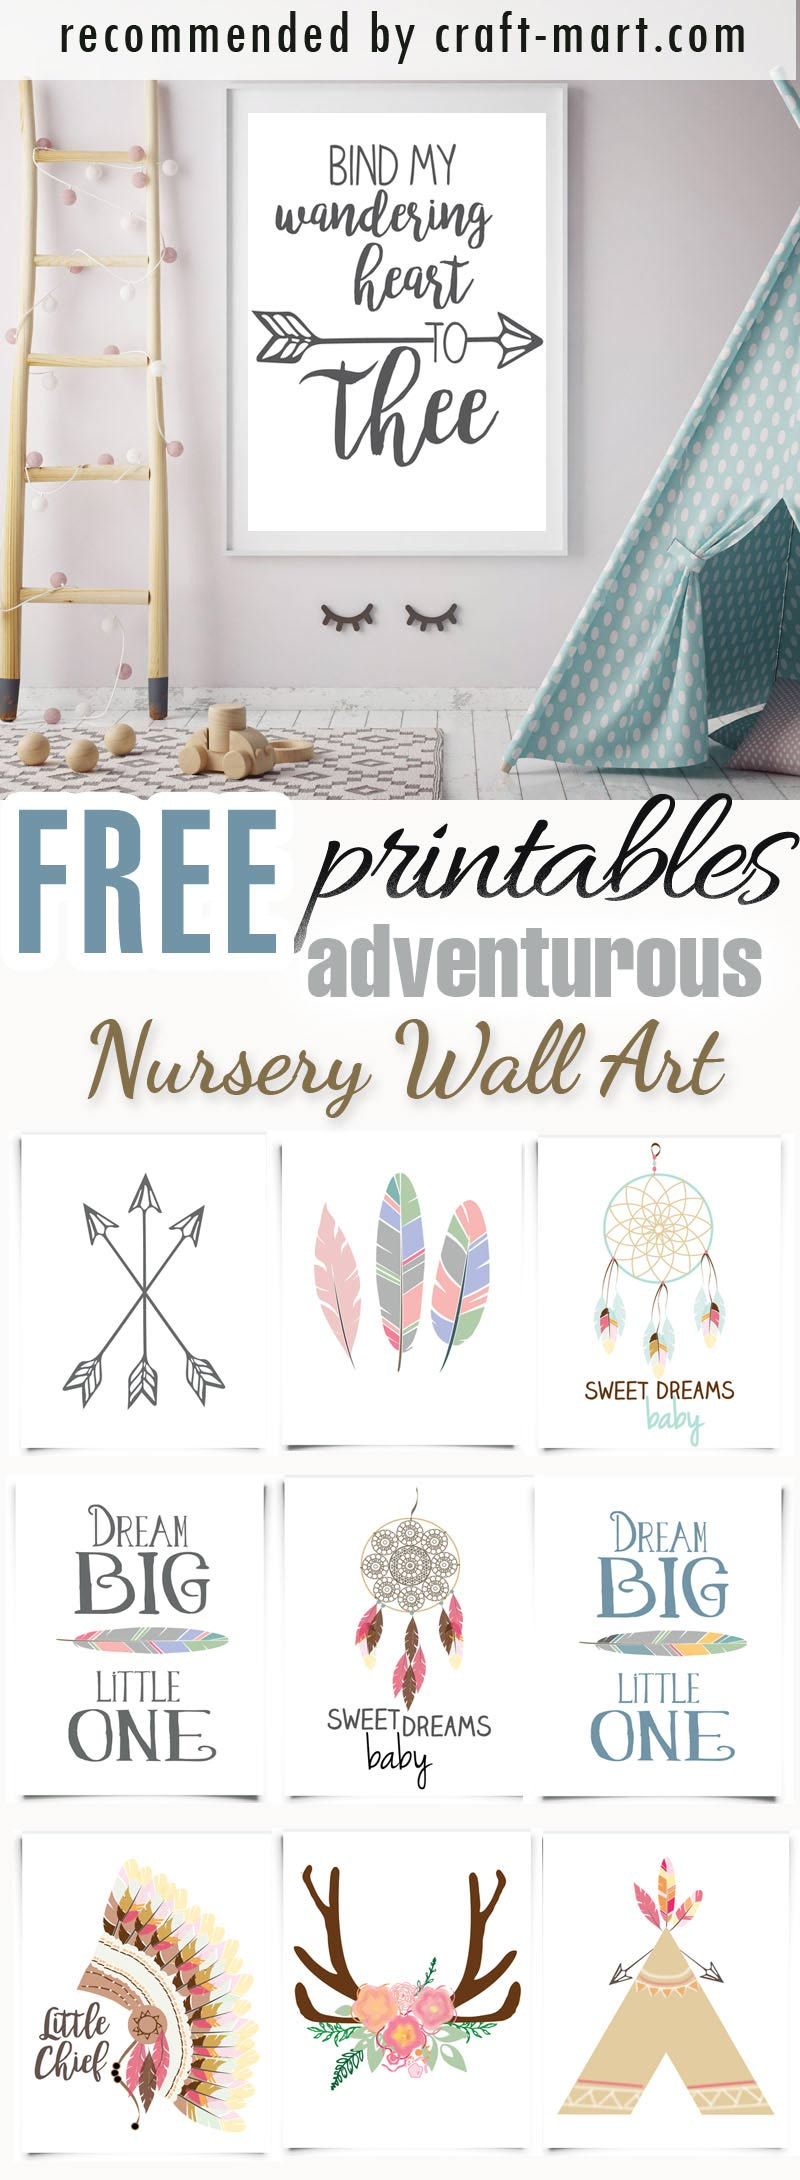 ADVENTURE AWAITS - FREE Nursery Printables and wall decor #freeprintables #freenurseryprintables #freenurserywallart #cutenurseryprints #tribalnurseryprintables #adventureawaitsnurseryprintables #dreamcatchernurseryprintables #freenurseryprints